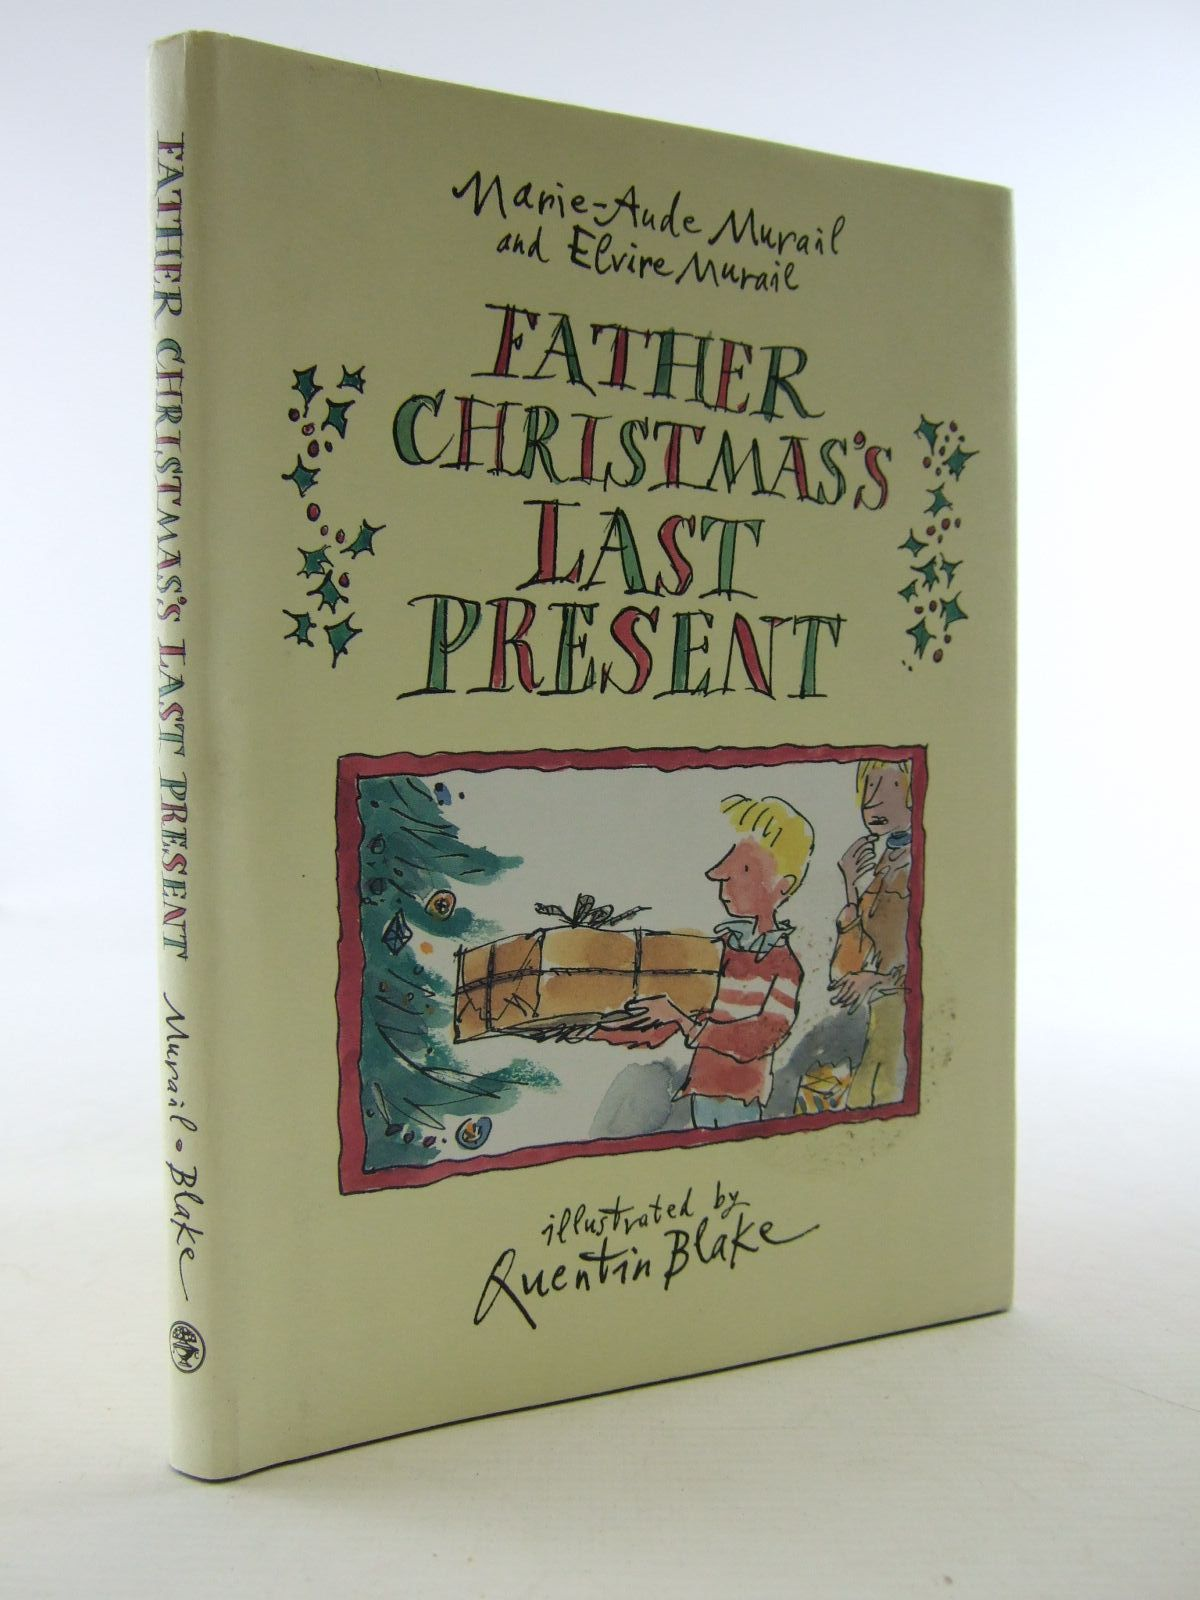 Photo of FATHER CHRISTMAS'S LAST PRESENT written by Murail, Marie-Aude Murail, Elvire illustrated by Blake, Quentin published by Jonathan Cape (STOCK CODE: 2108520)  for sale by Stella & Rose's Books